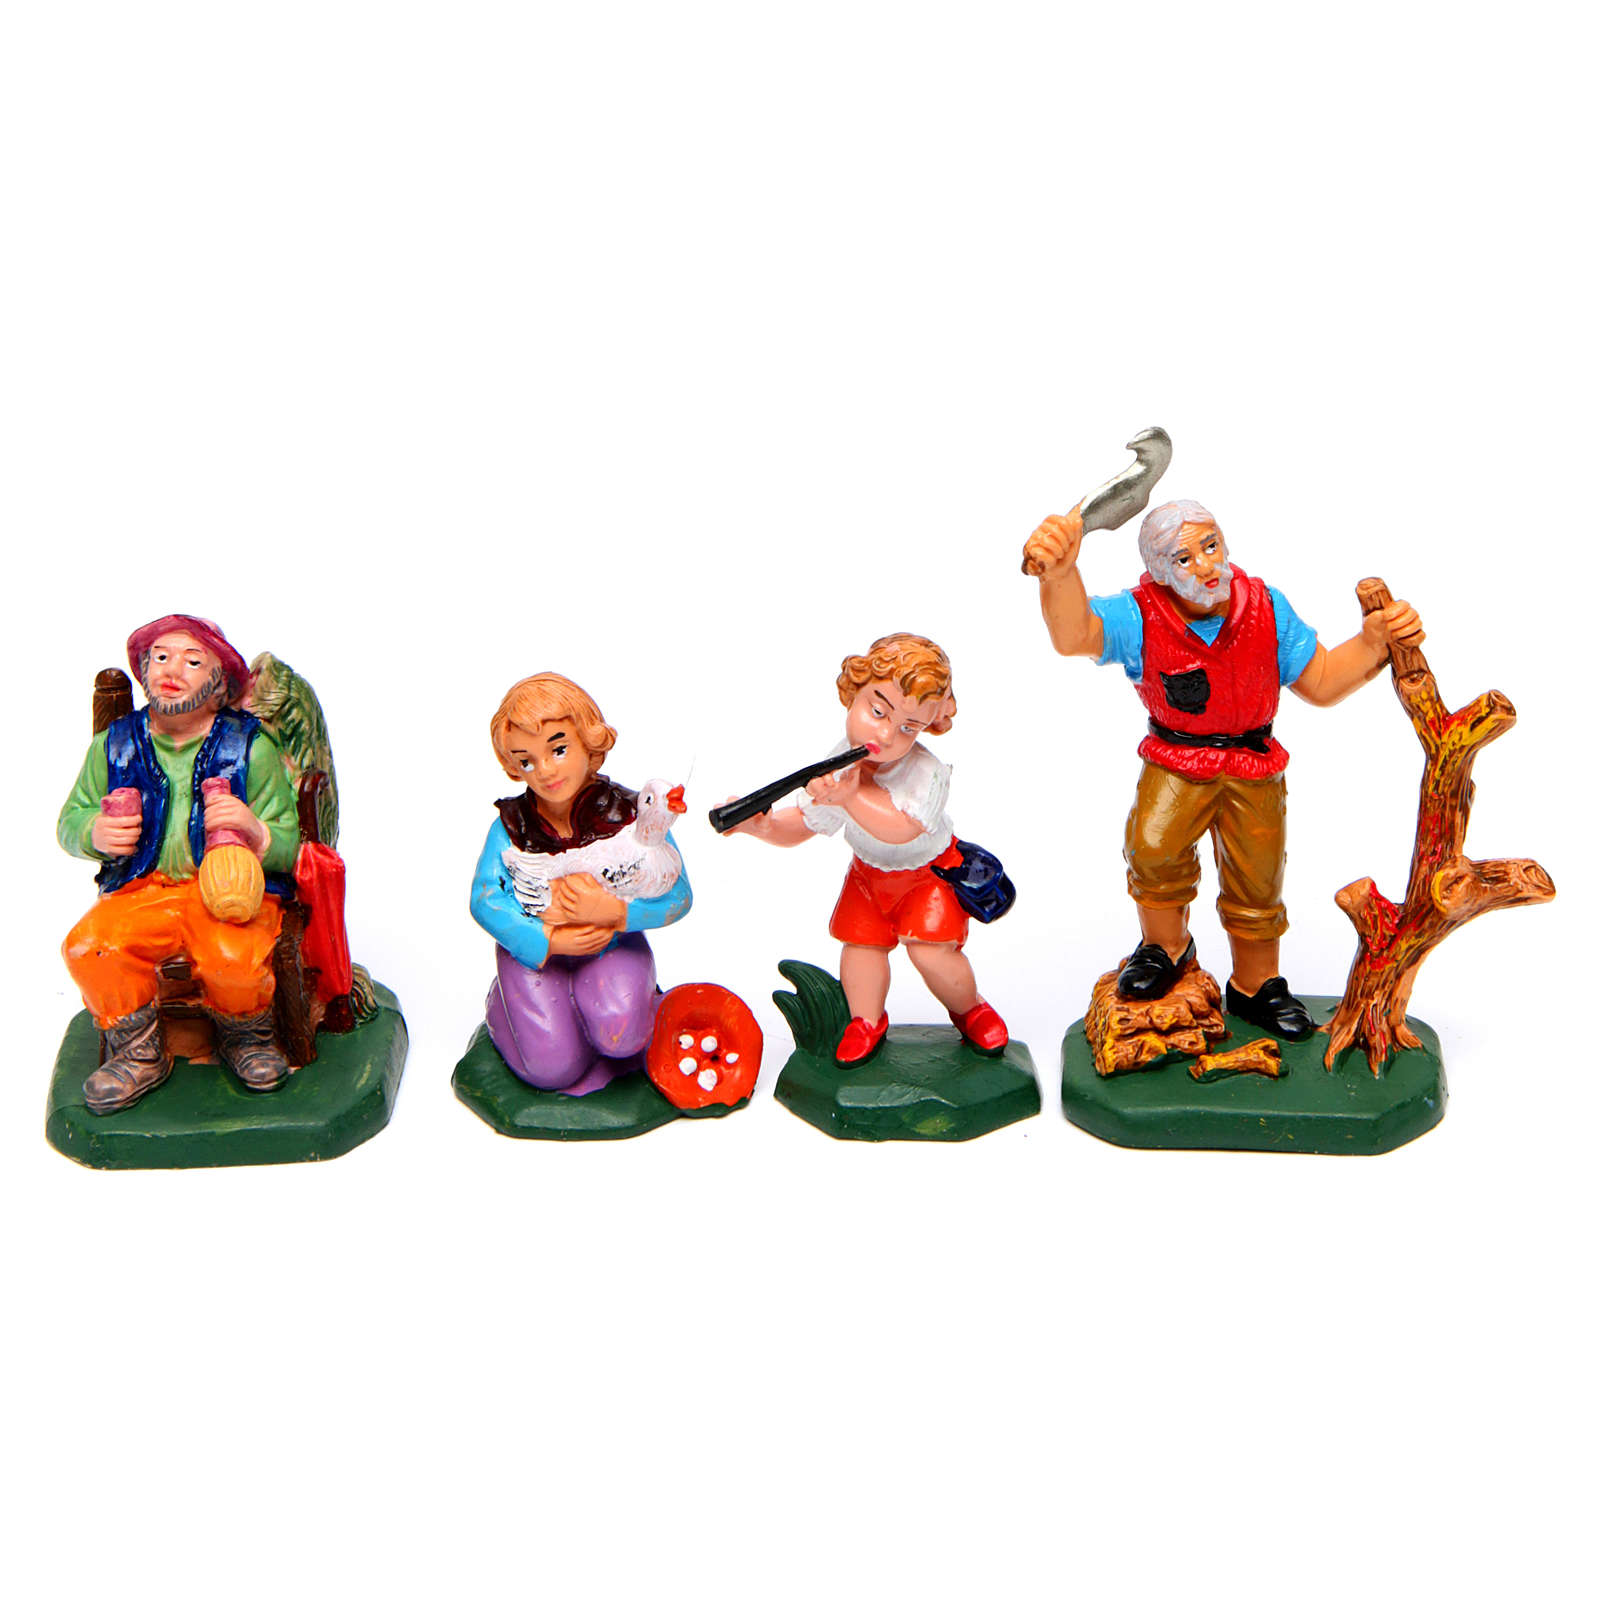 Figurines for Nativity Scene 8 cm, set of 19 3